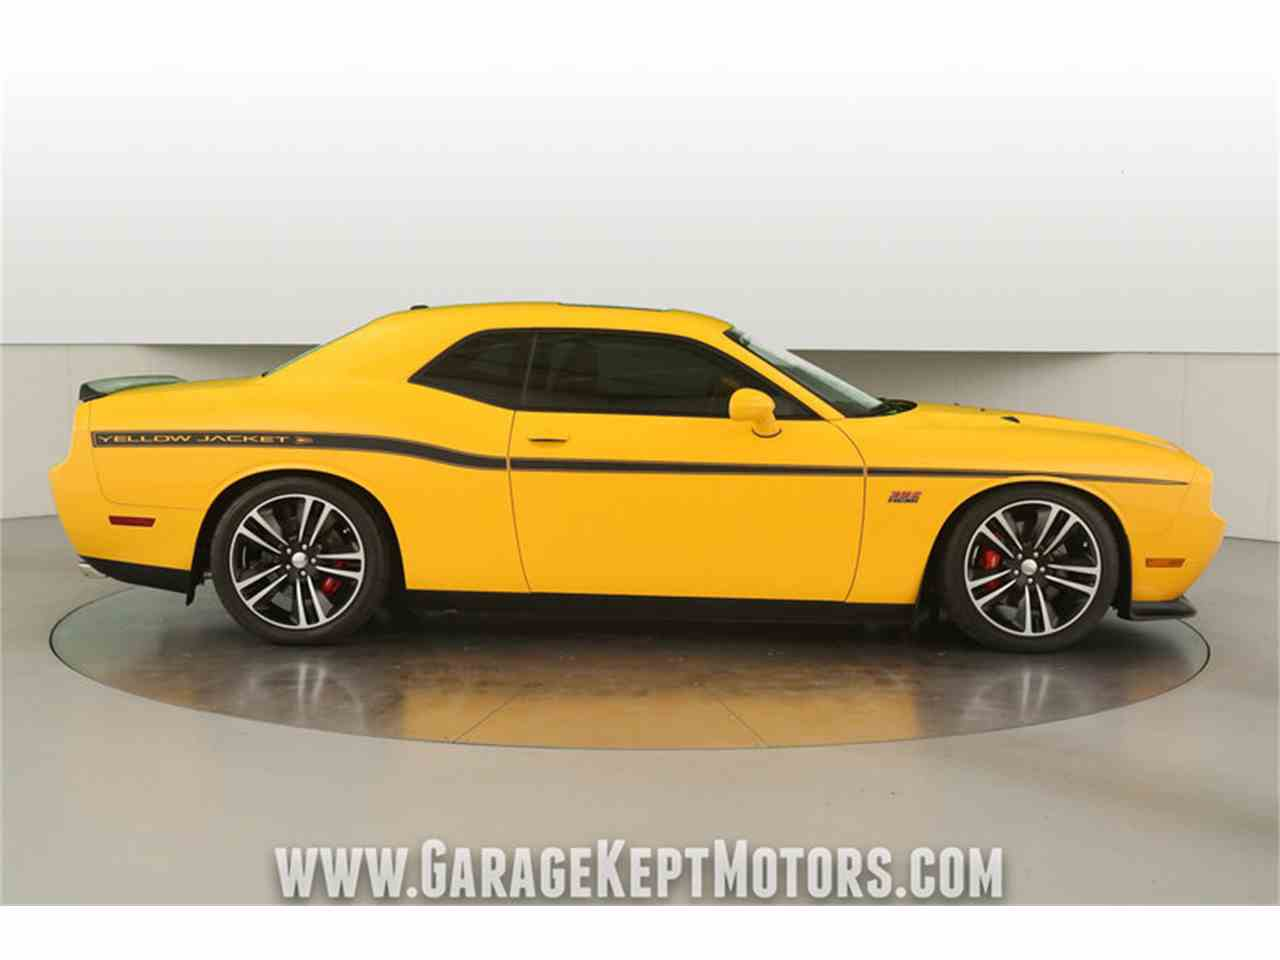 Large Picture of '12 Challenger SRT8 392 Yellow Jacket located in Grand Rapids Michigan - $36,500.00 Offered by Garage Kept Motors - MAXR